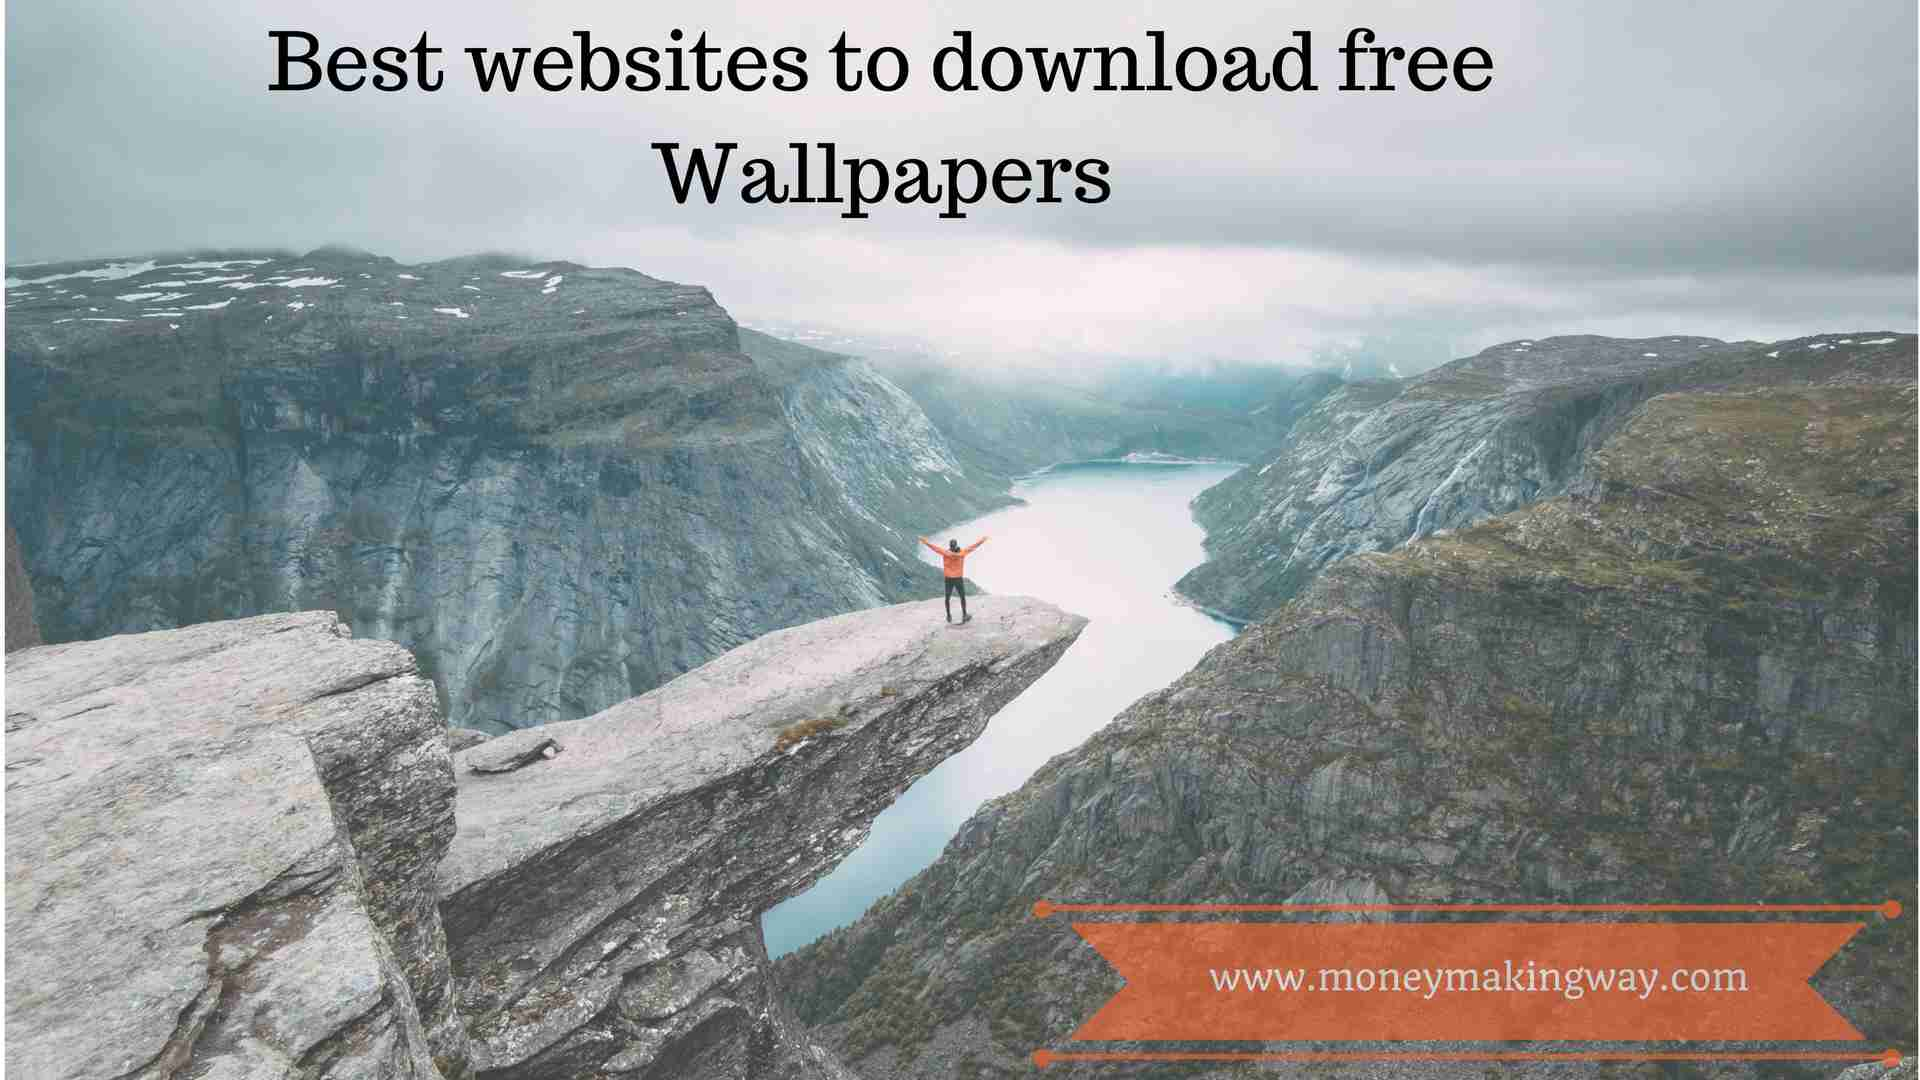 13 best websites to download free wallpapers - sheknowsfinance